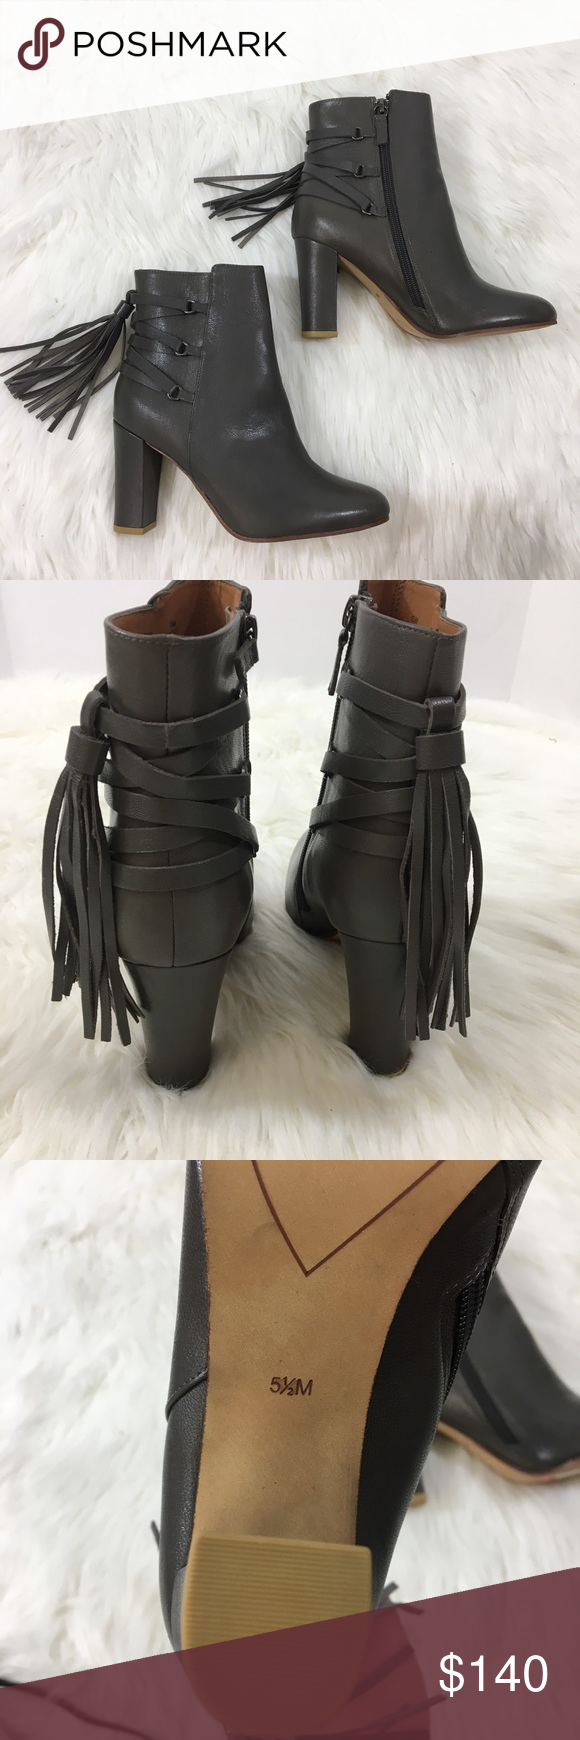 805155ddadaeb Detailed backing with multiple straps and cute fringes tassels that sway  with every step✨💓✨ Halogen Shoes Ankle Boots   Booties. Halogen Grey Sadee  ...